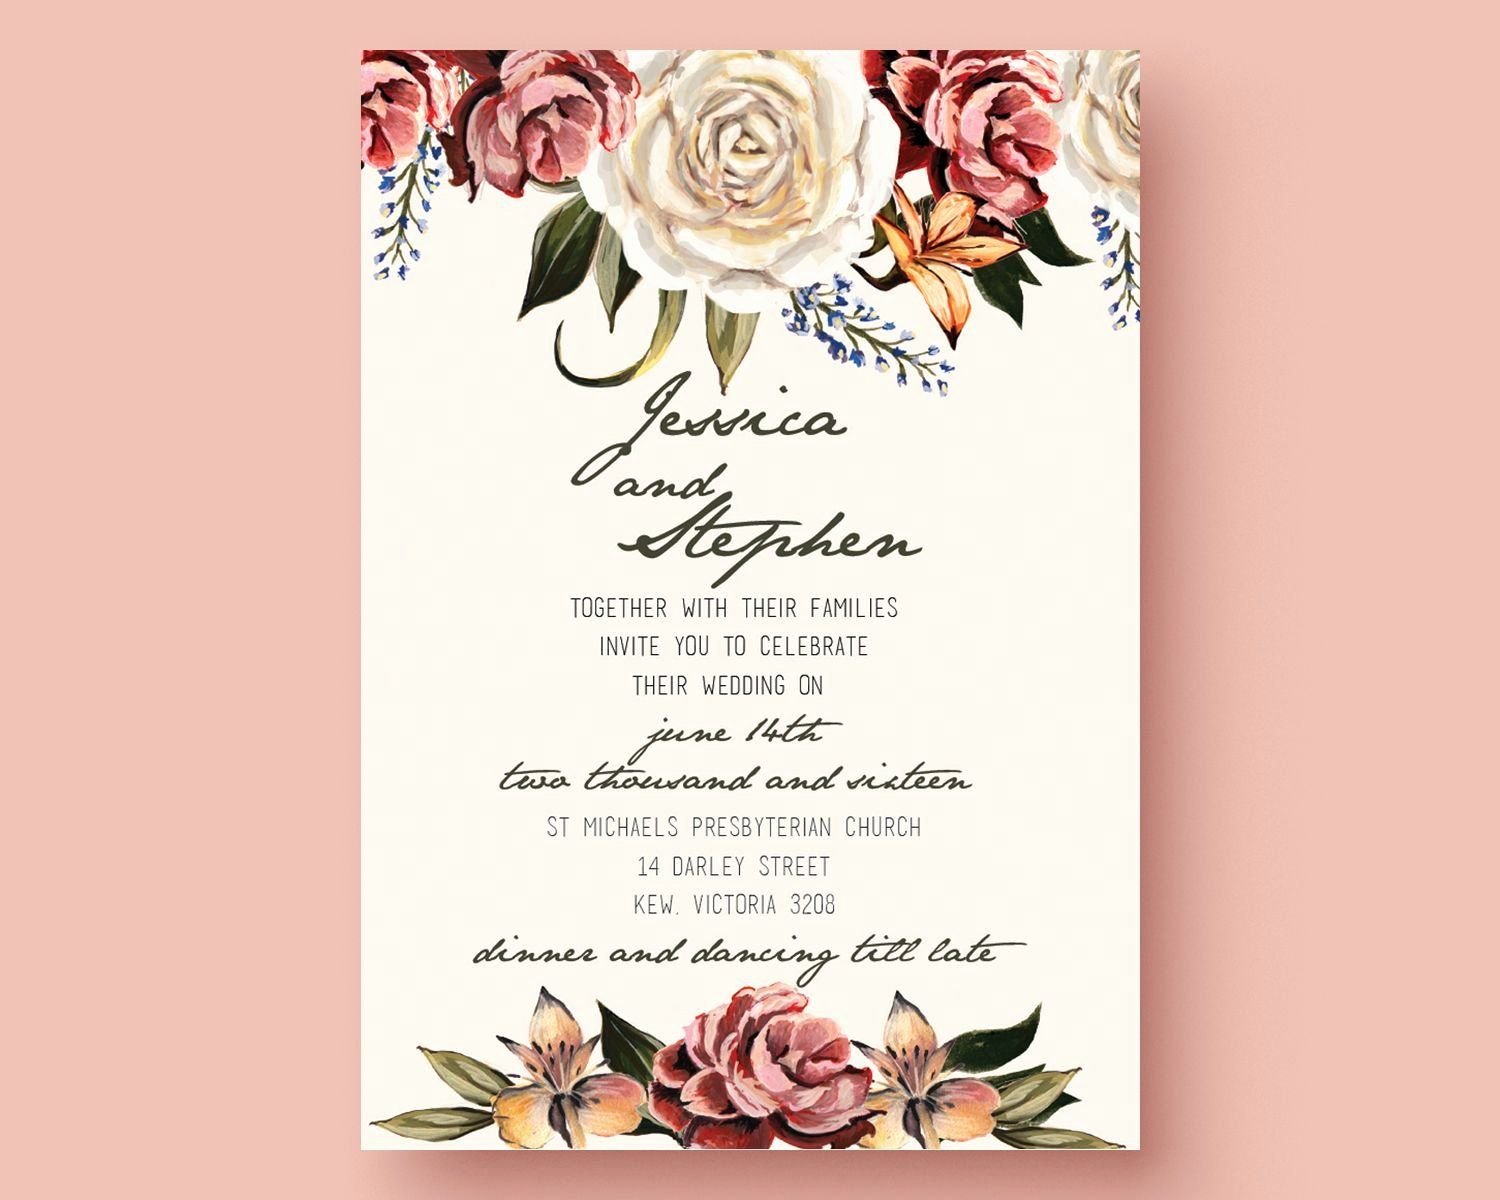 Invitation Template Free Download from i.pinimg.com